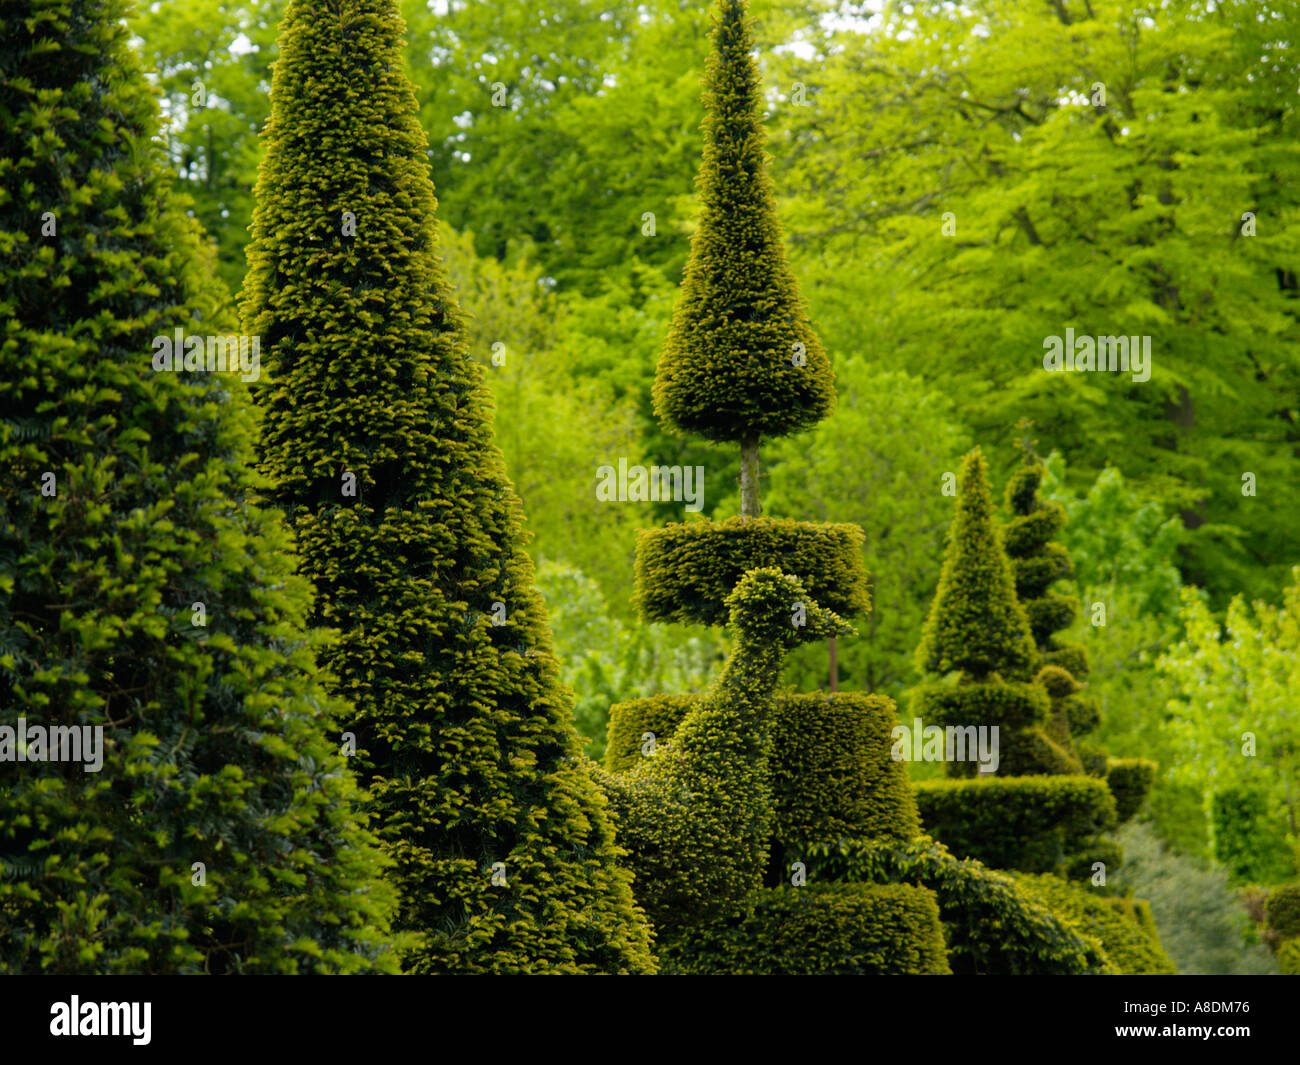 The Art Of Pruning A Line Of Taxus Yew Trees Bushes Cut Trimmed